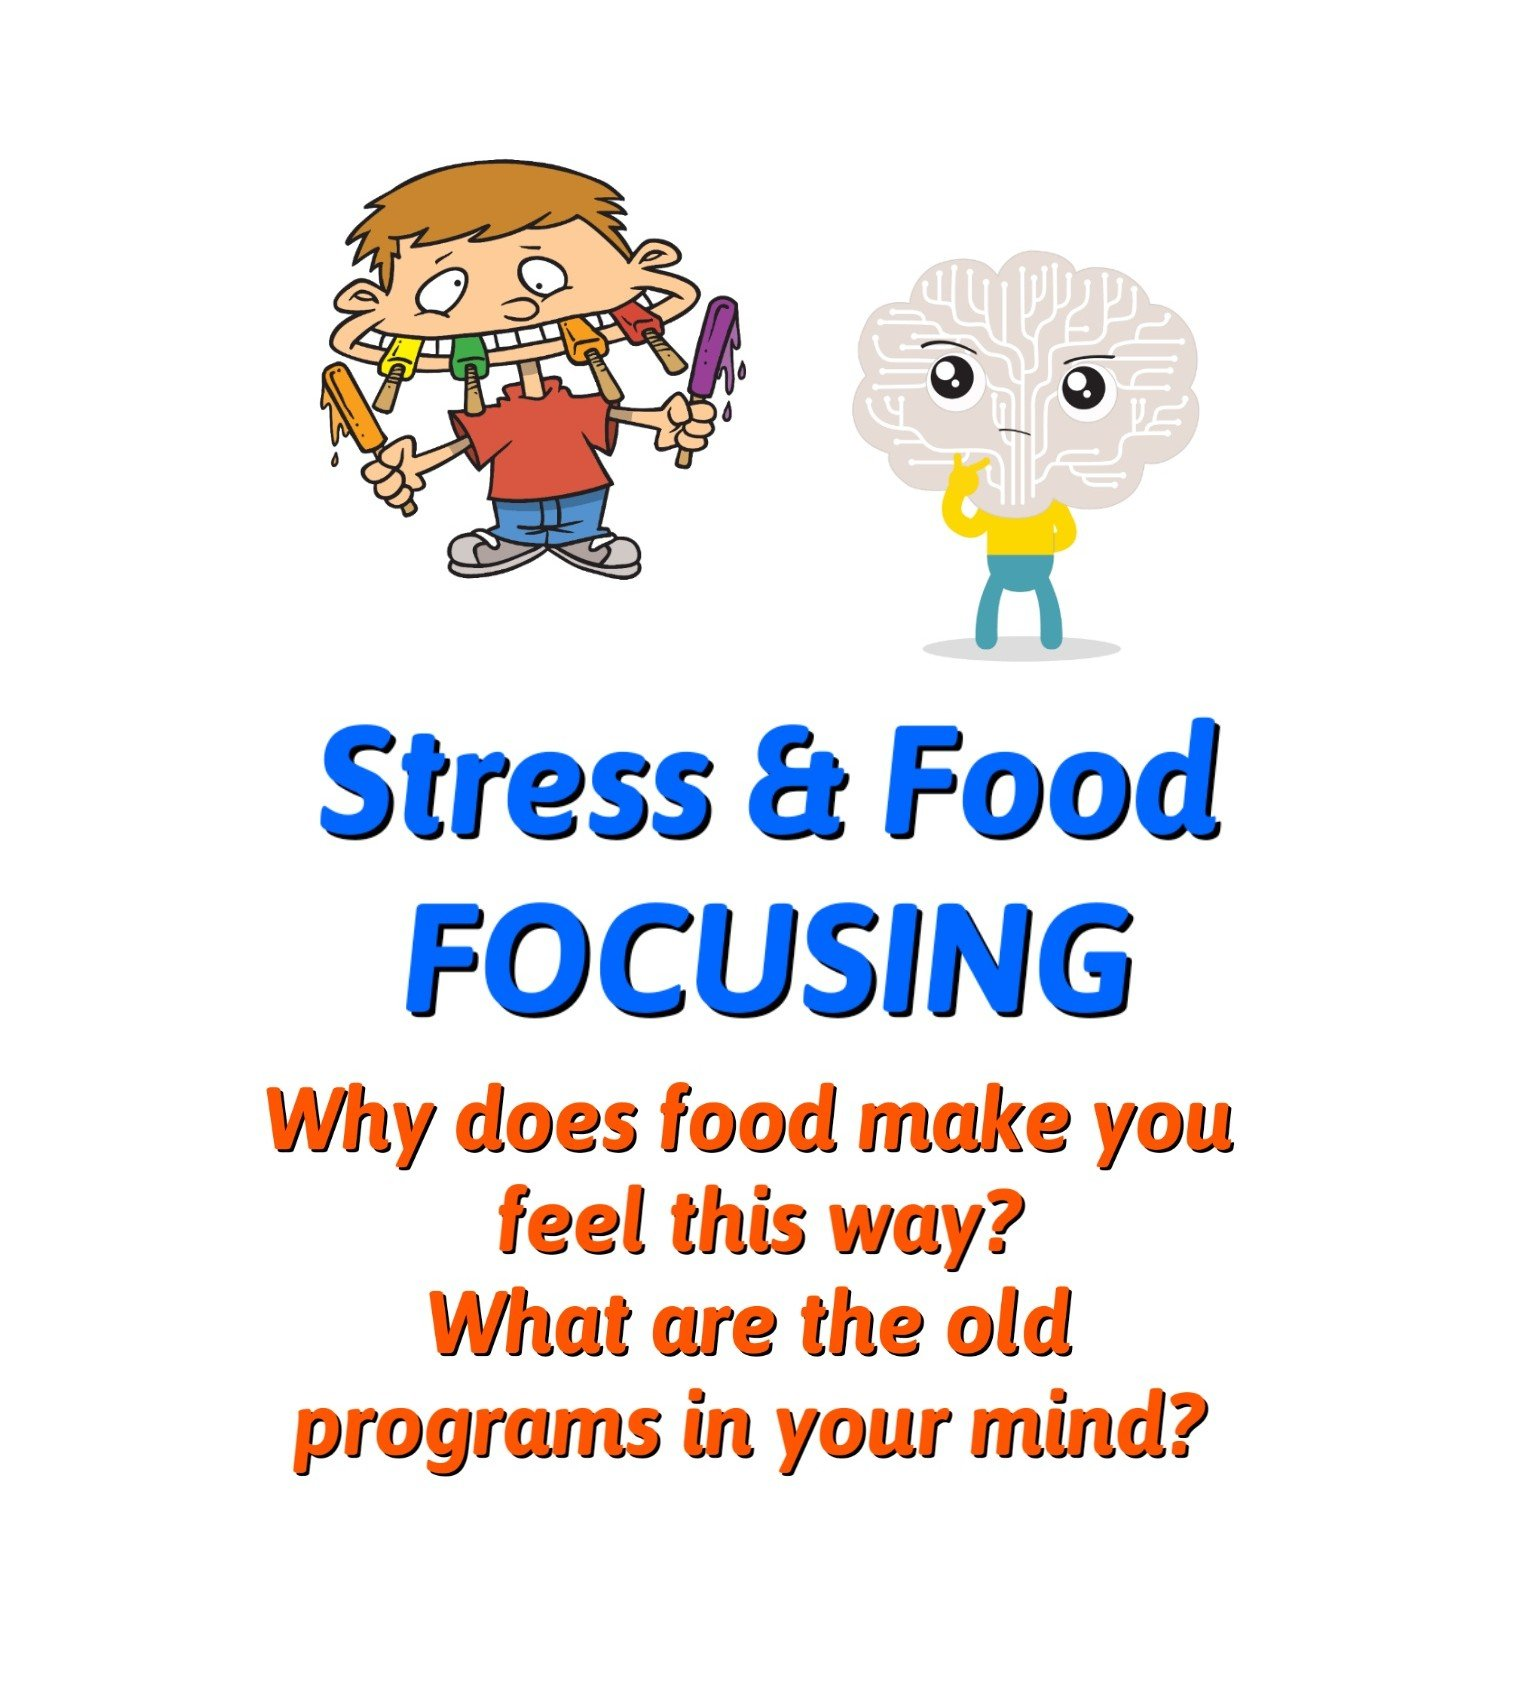 Stress & Food Focusing